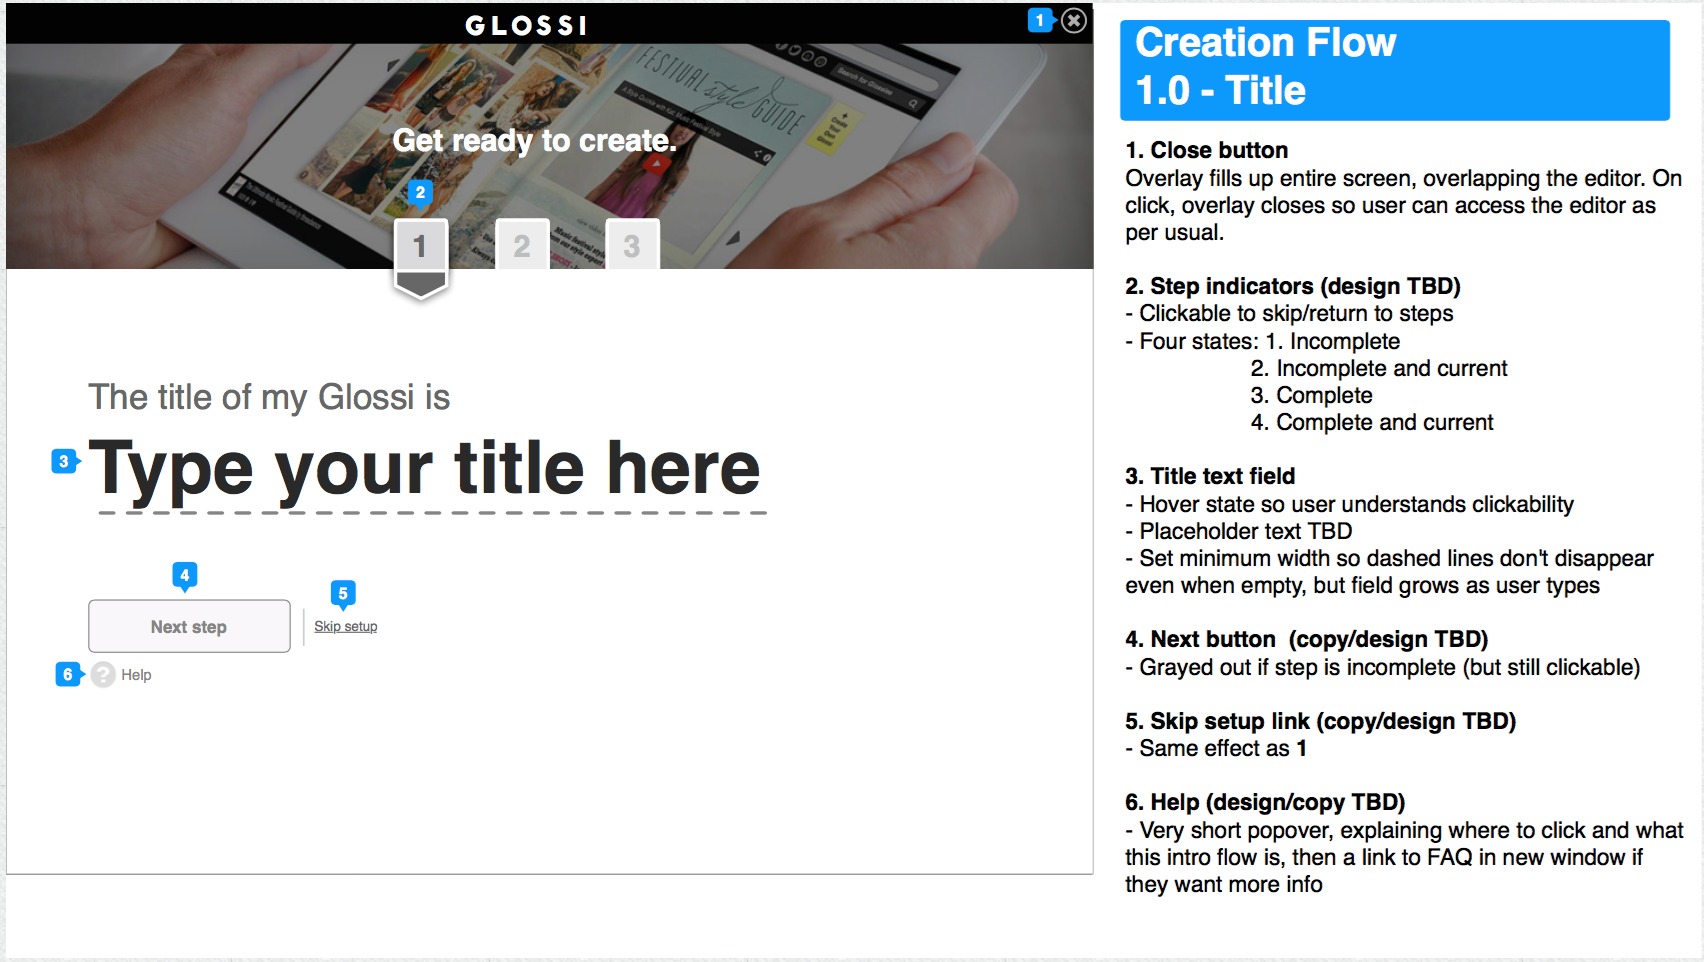 Wireframe for step 1 of the flow: entering your title